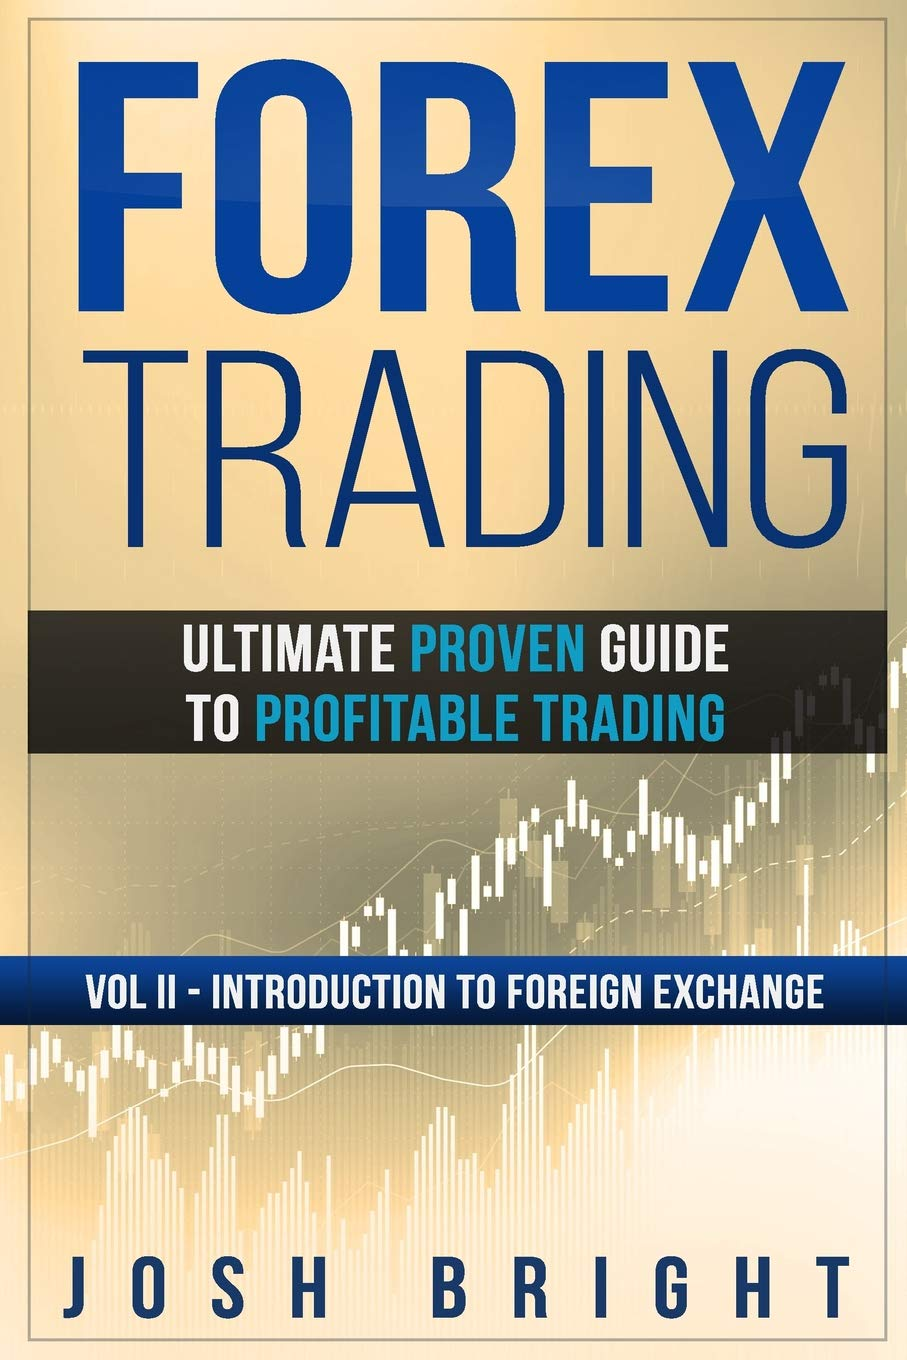 Amazon com: Forex Trading: Ultimate Proven Guide to Profitable